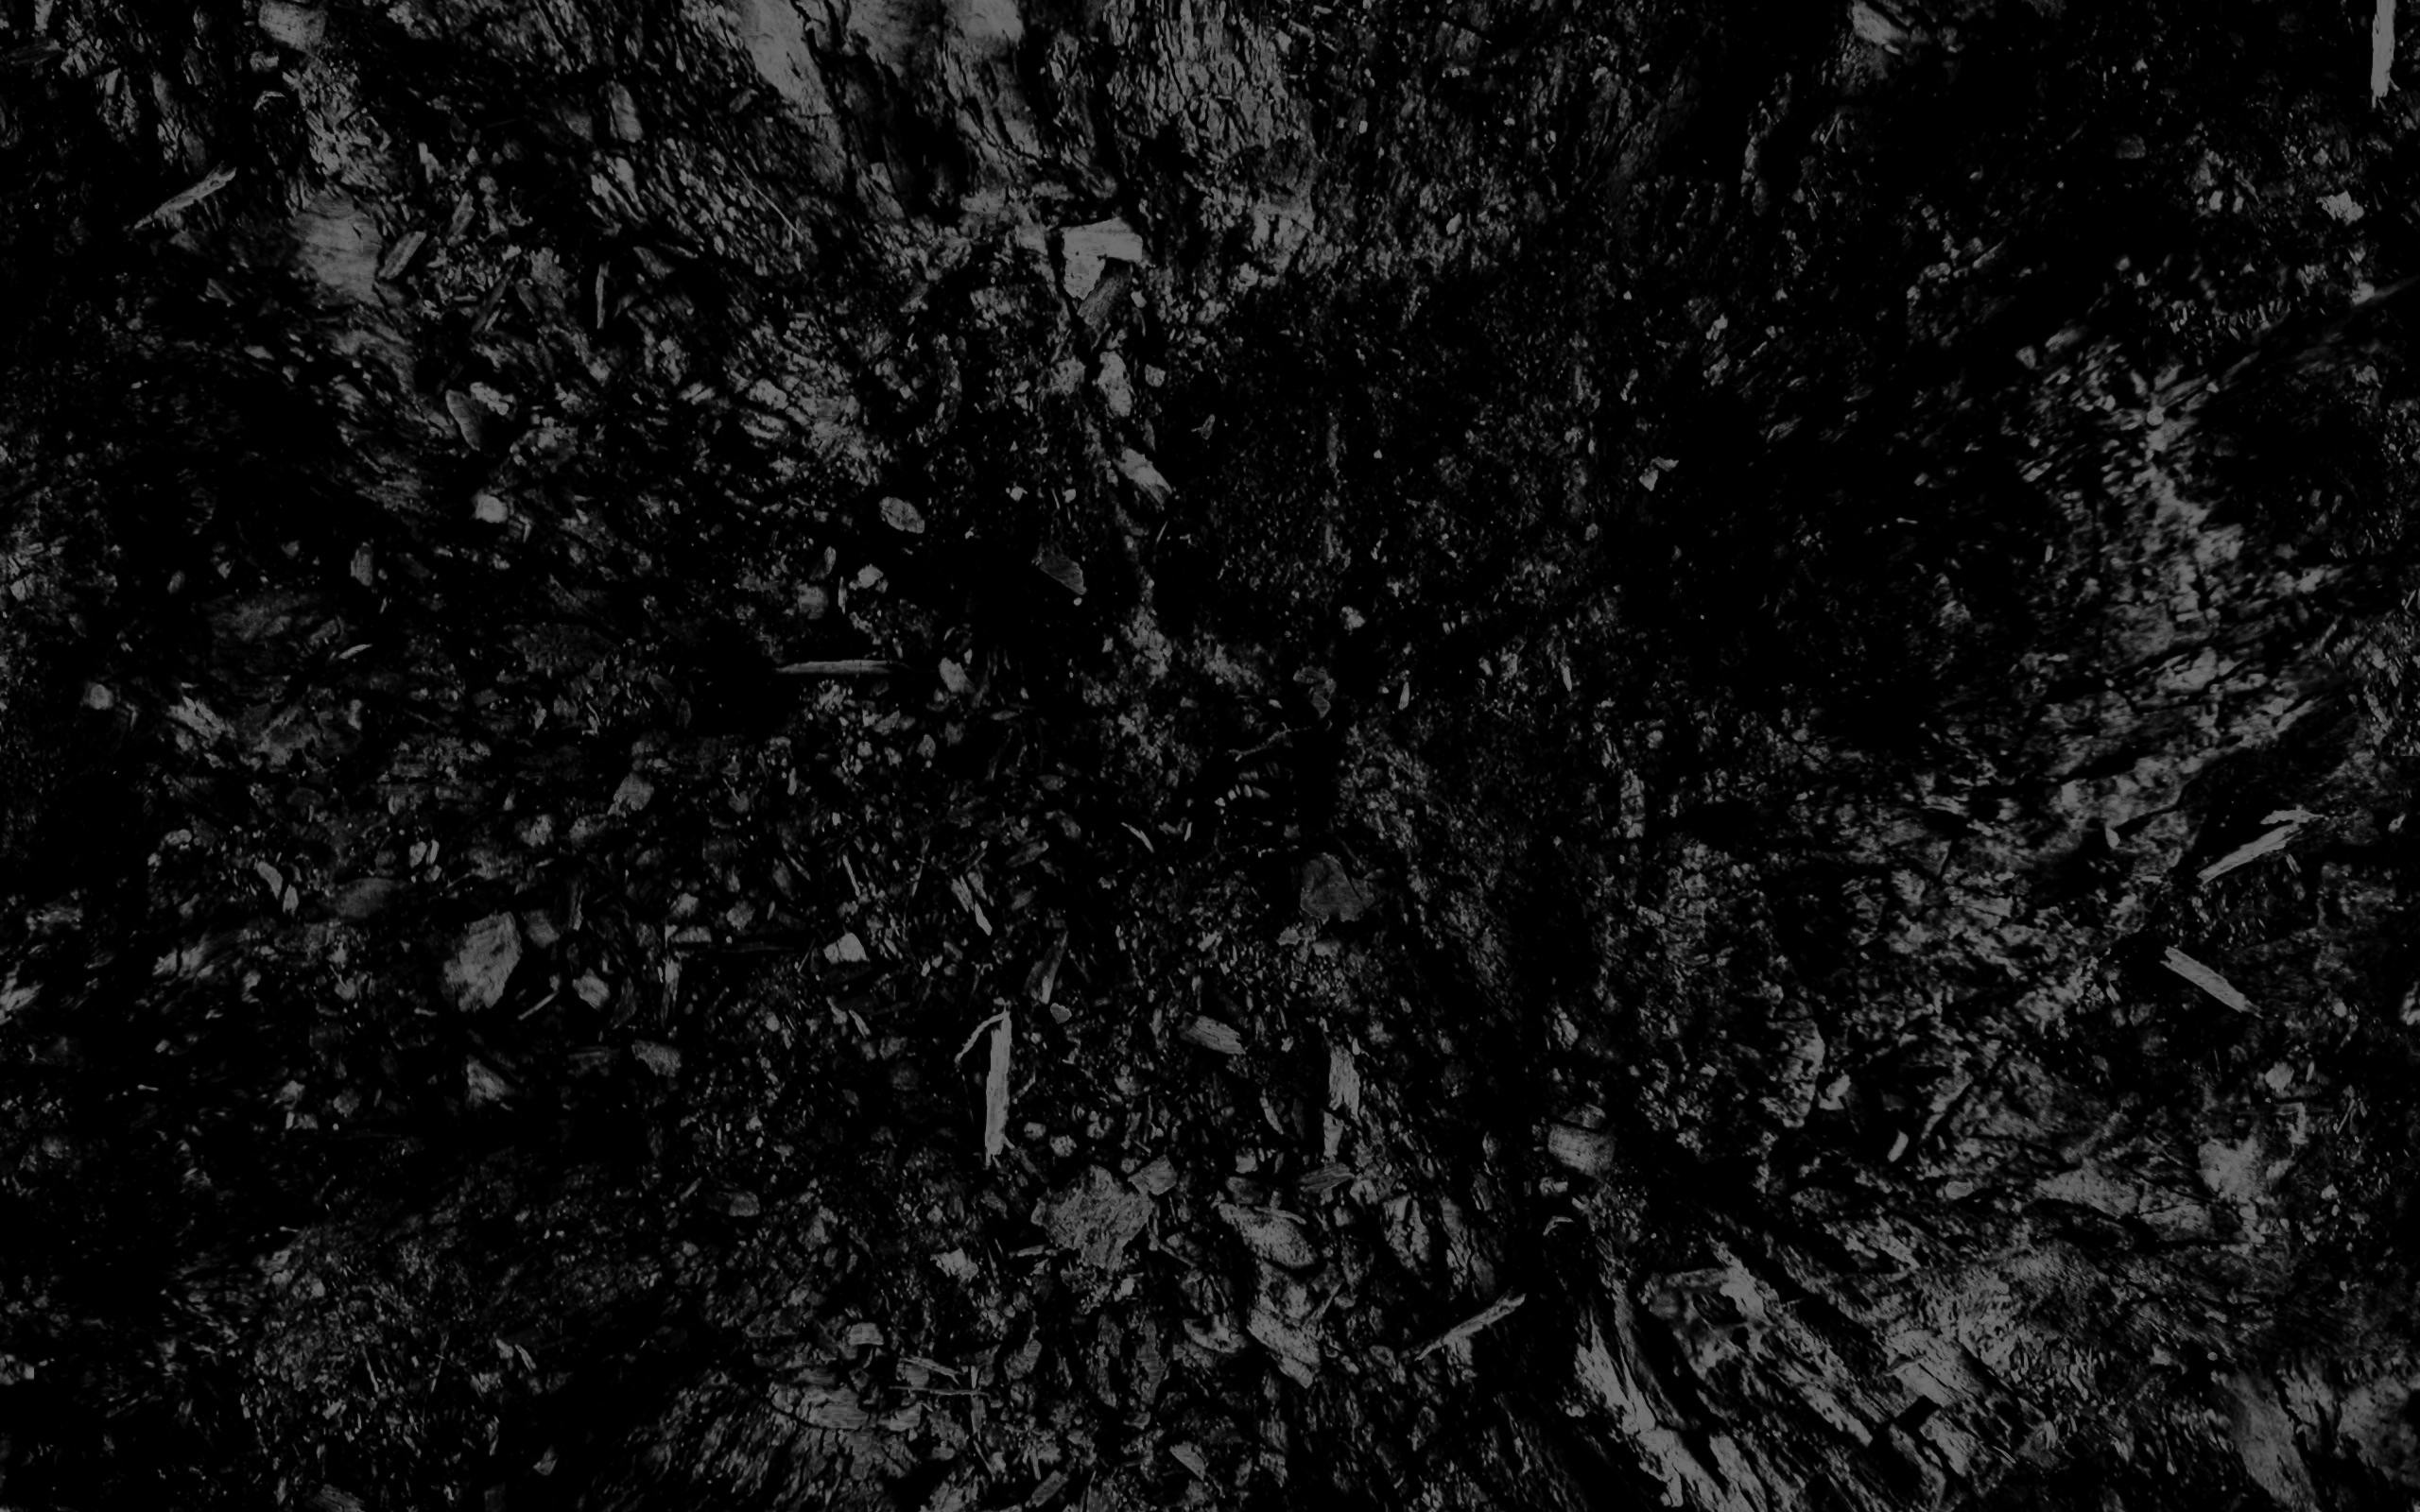 2560x1600 Preview wallpaper dark, black and white, abstract, black background